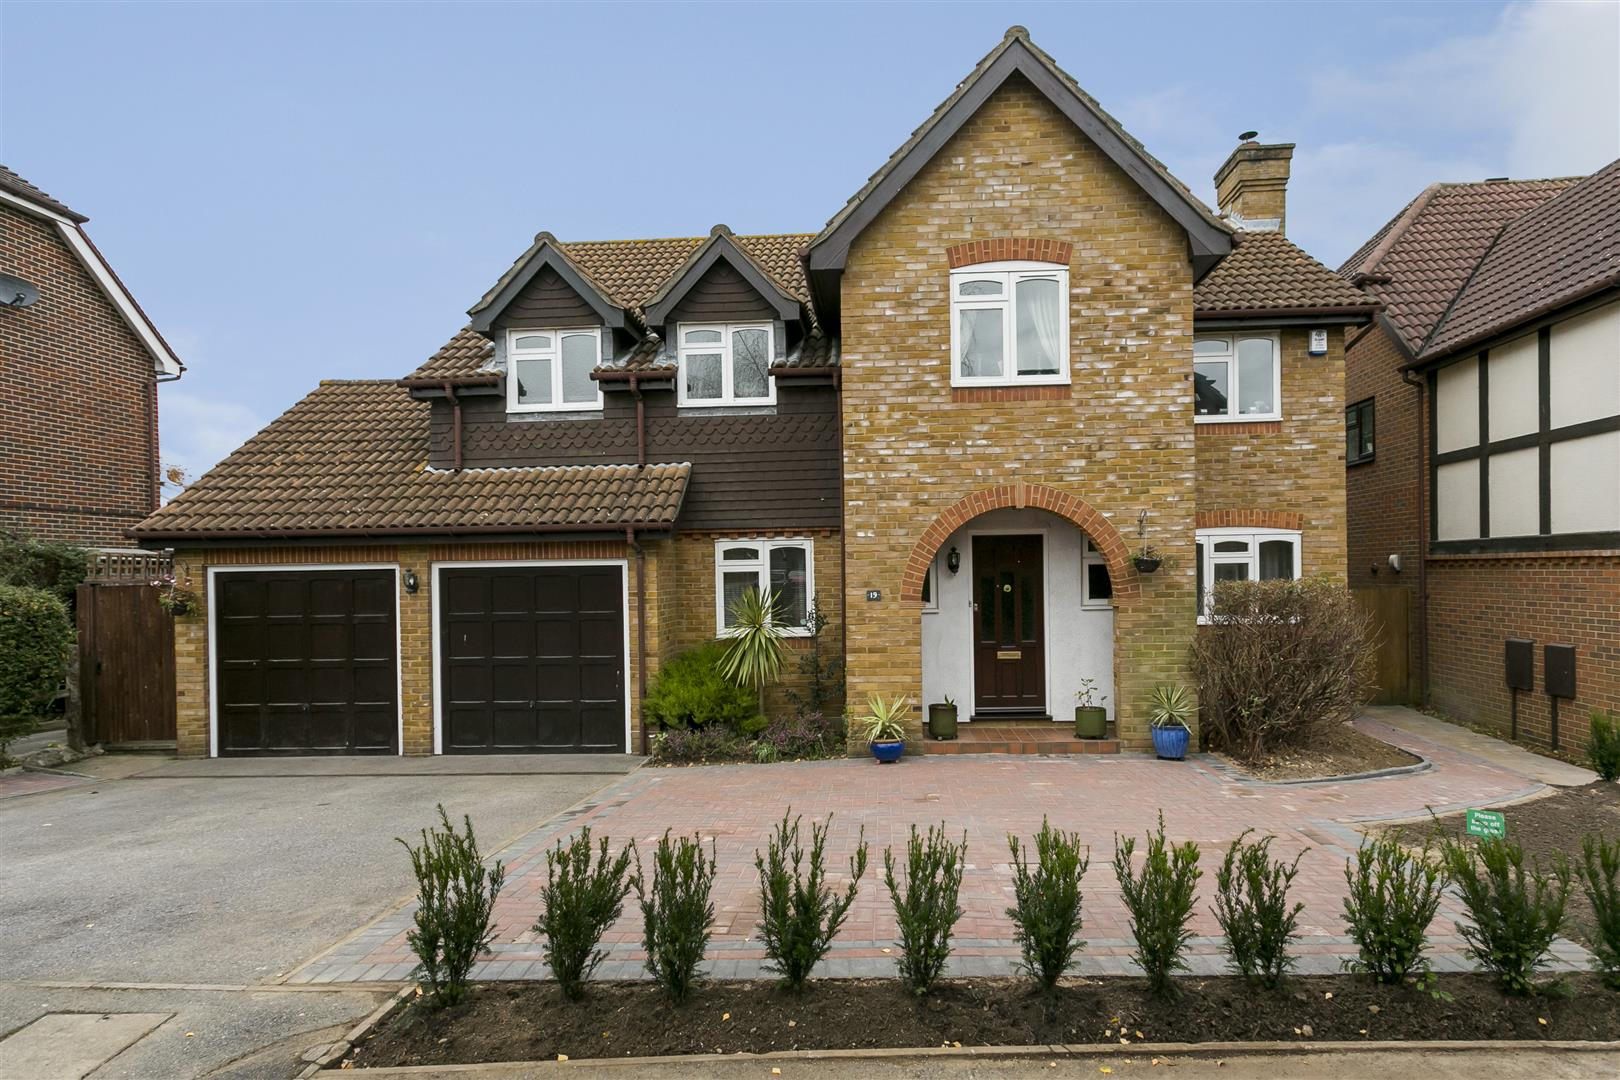 5 Bedrooms Detached House for sale in Russett Close, Aylesford